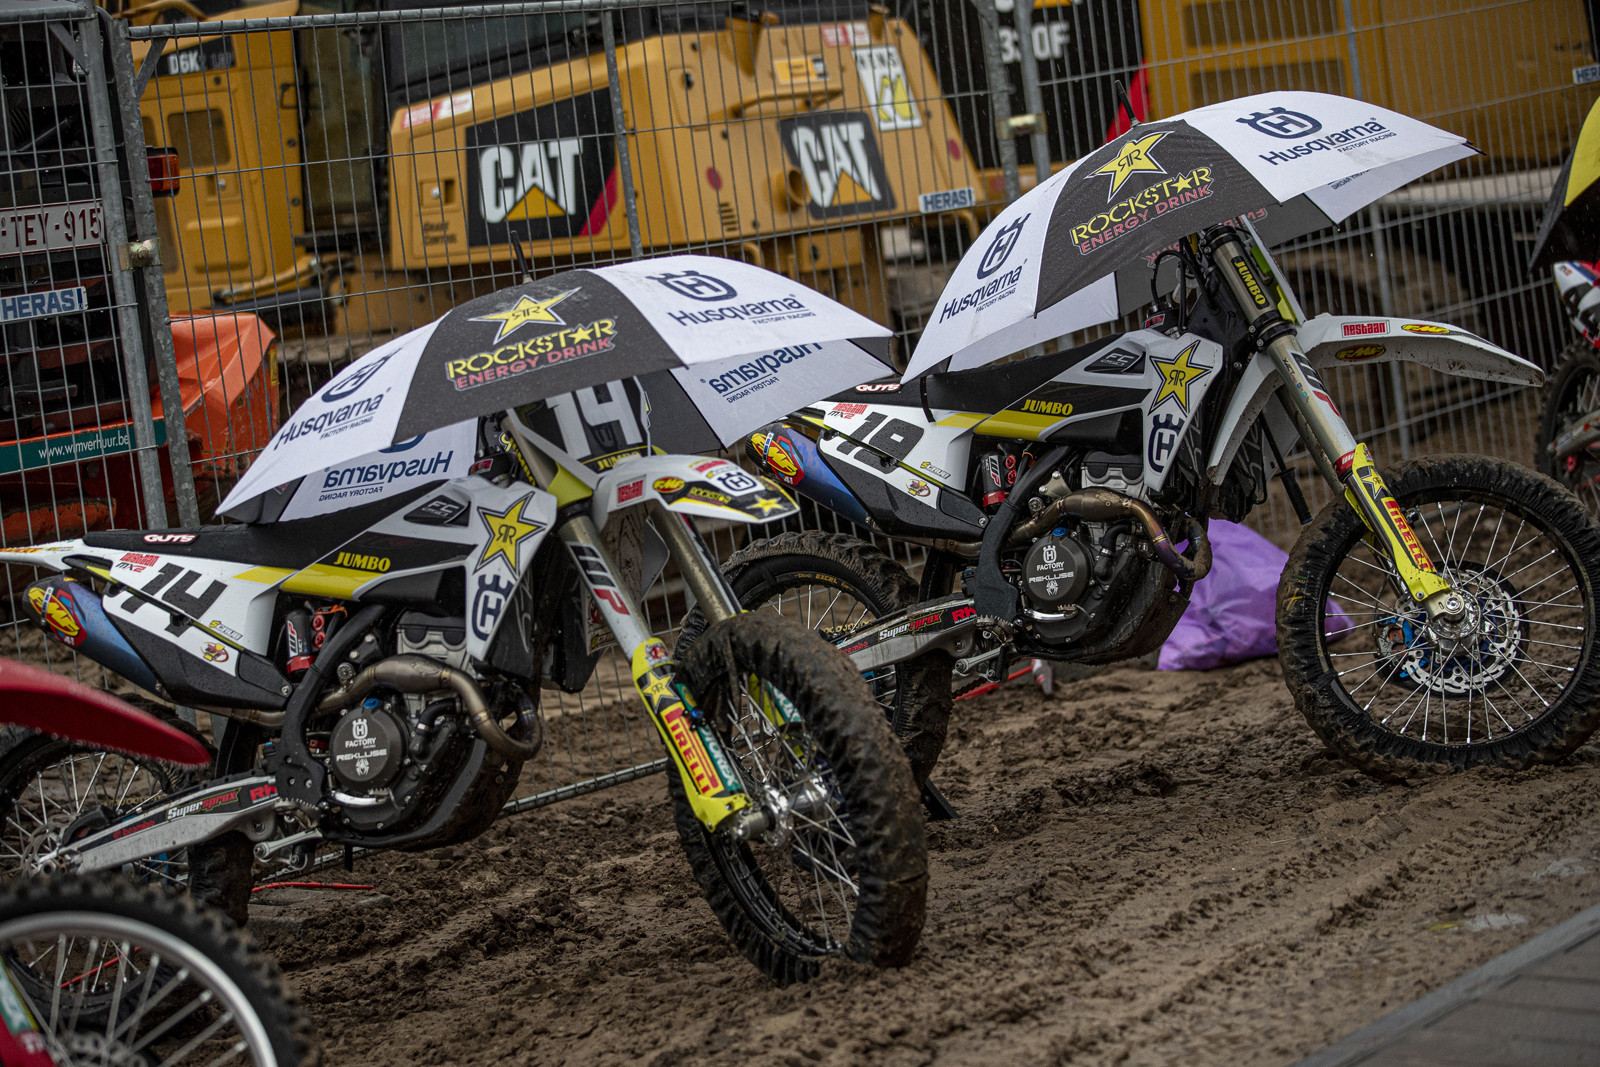 Another rainy day at Lommel. Bikes need to stay dry, too.